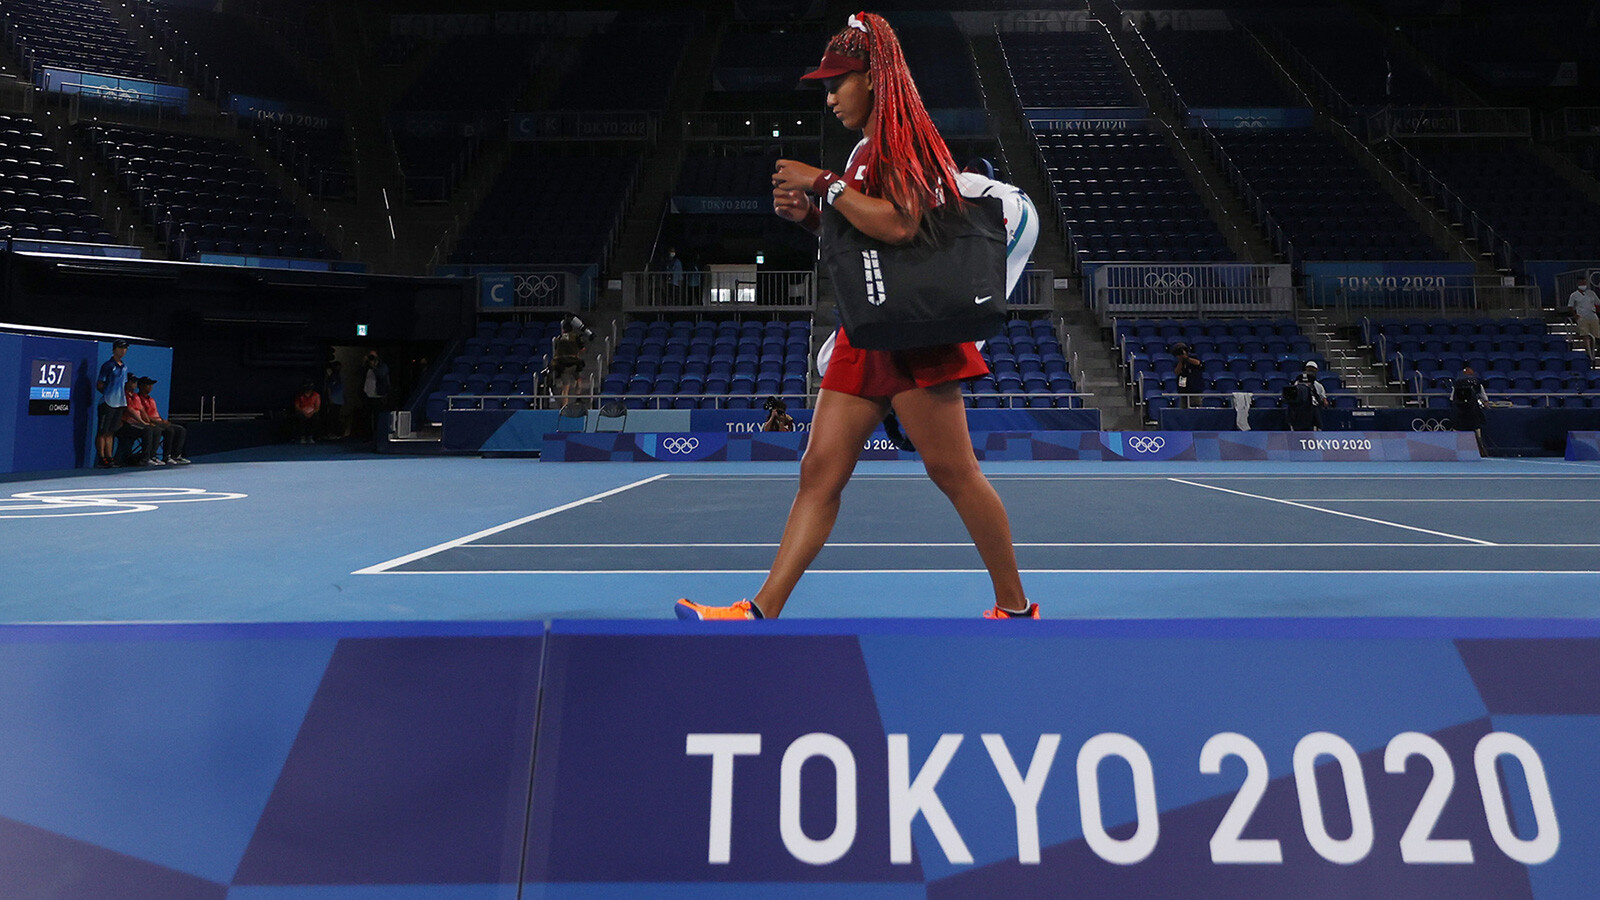 Naomi Osaka will leave Tokyo Olympics without a medal, loses in 3rd round to Marketa Vondrousova